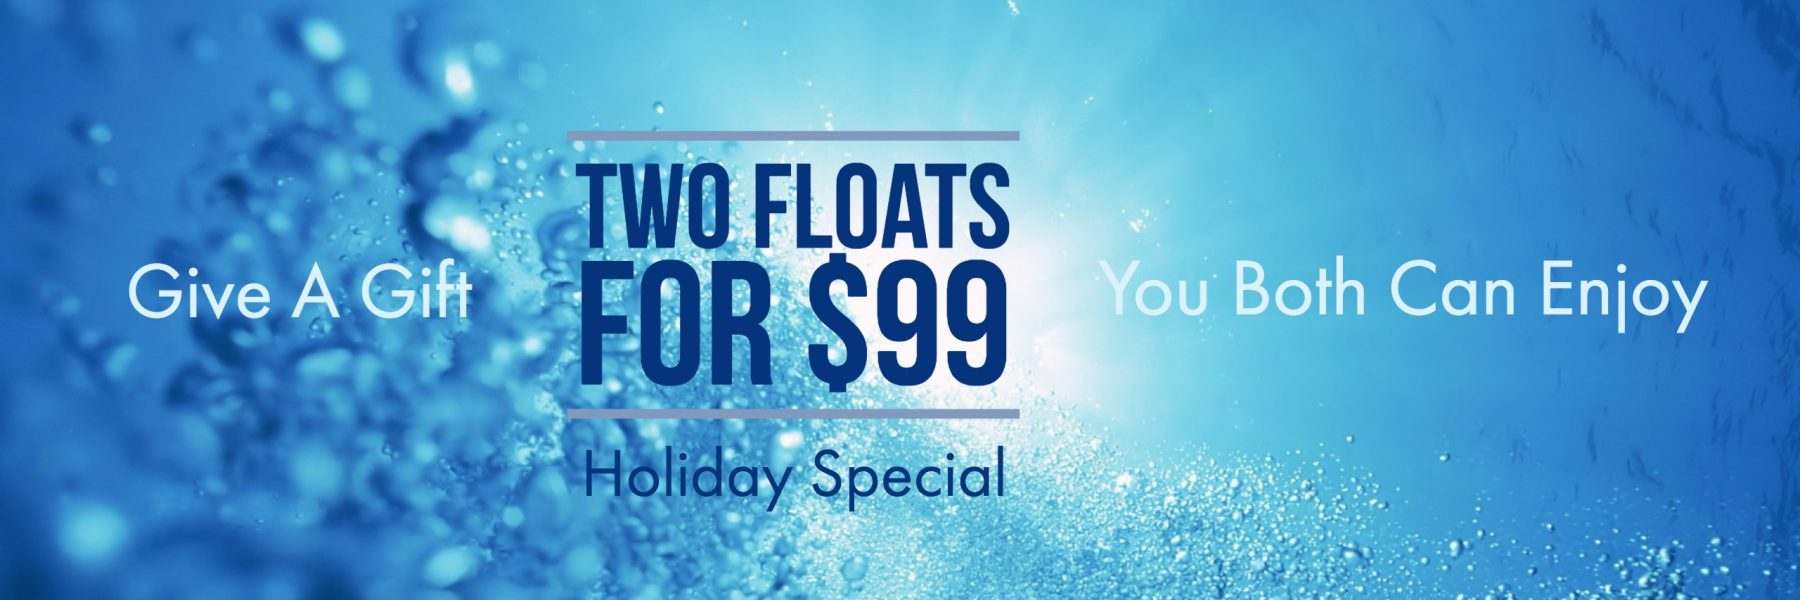 2 Floats for $99